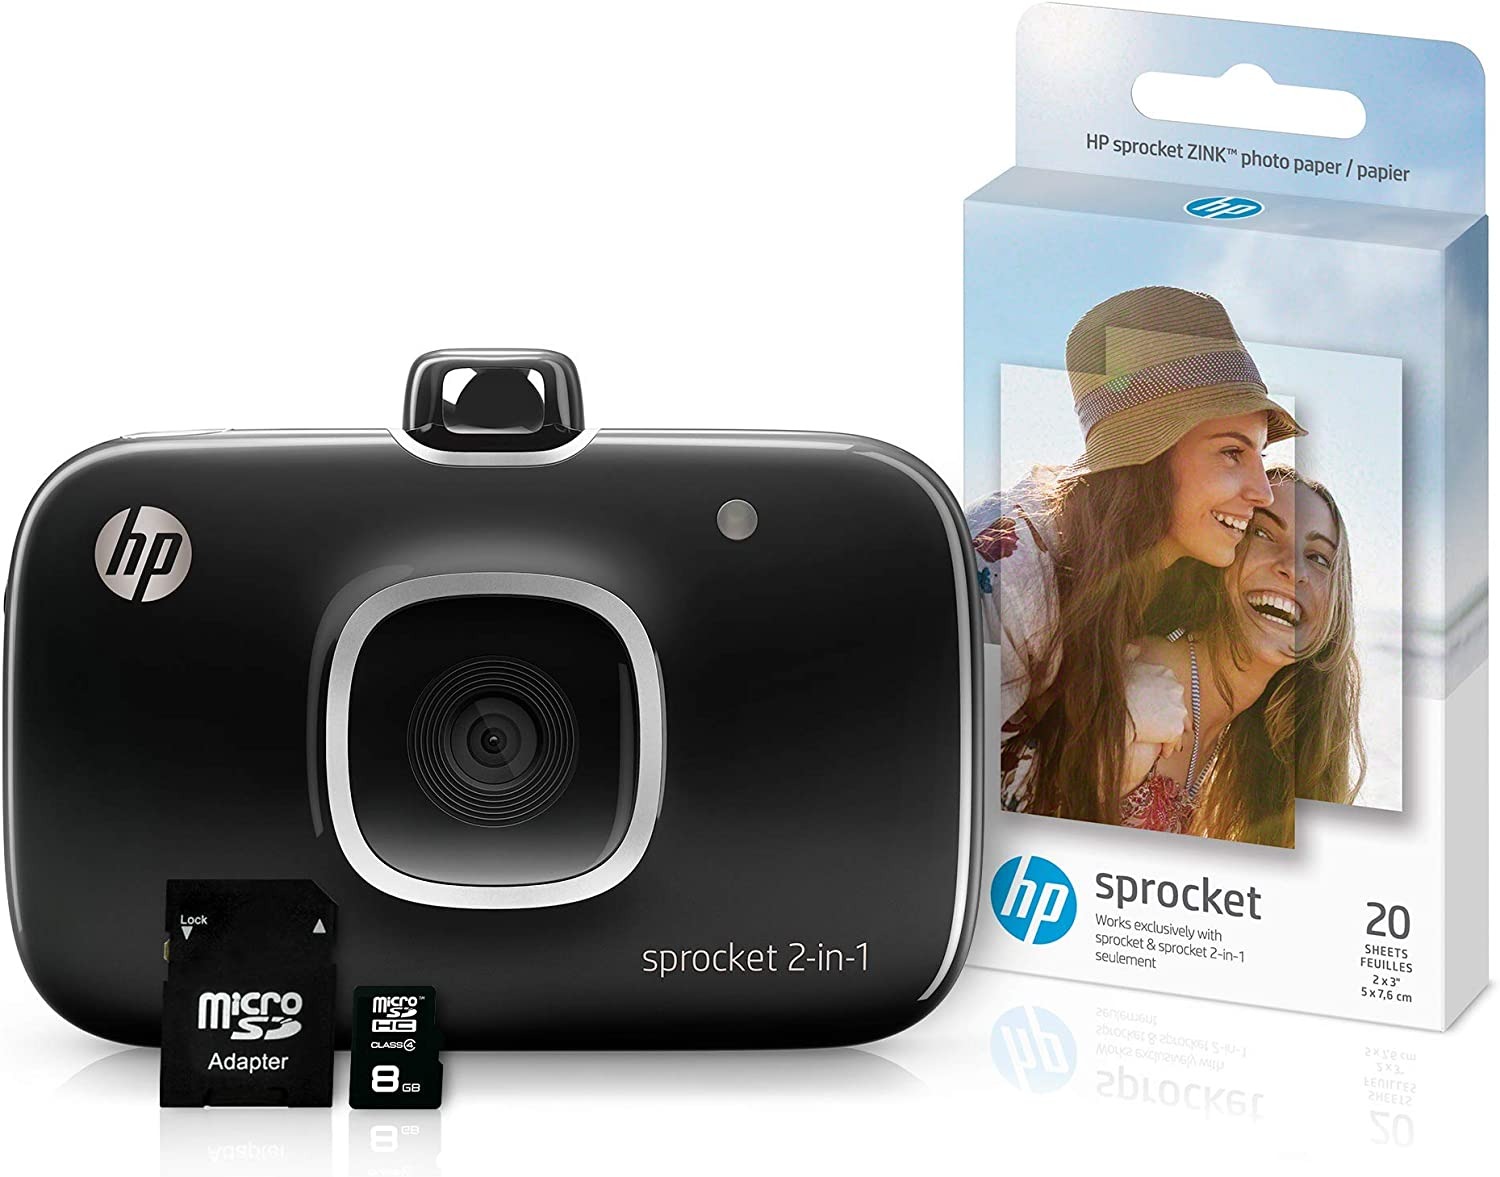 HP 5MS96A Sprocket 2-in-1 Portable Photo Printer & Instant Camera Bundle with 8GB Micro SD Card and Zink Photo Paper, Black (Pack of 3) (Renewed)